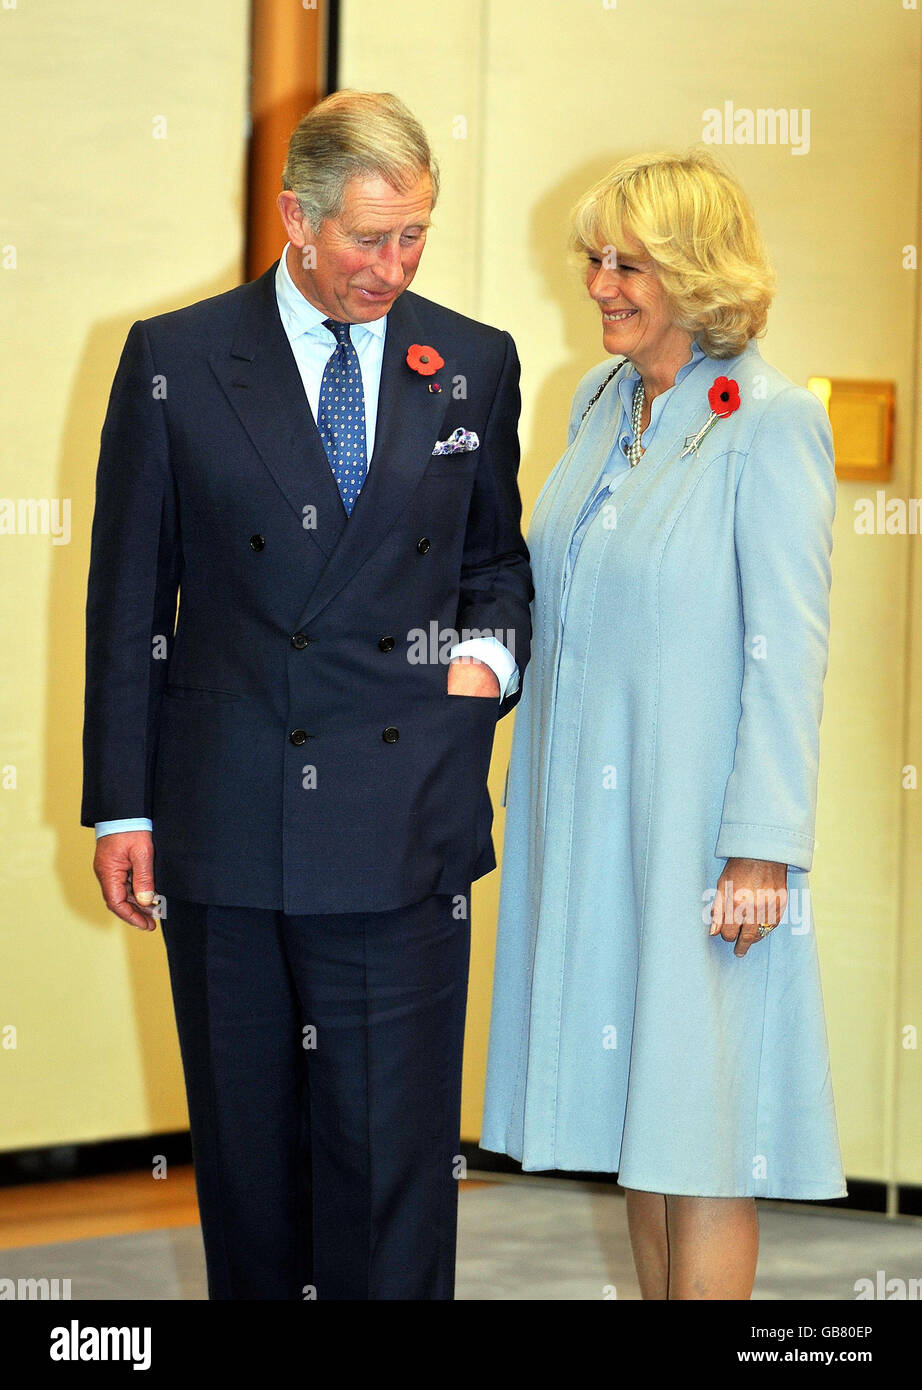 The Prince Of Wales Tour To Japan And The East Stock Photos & The ...